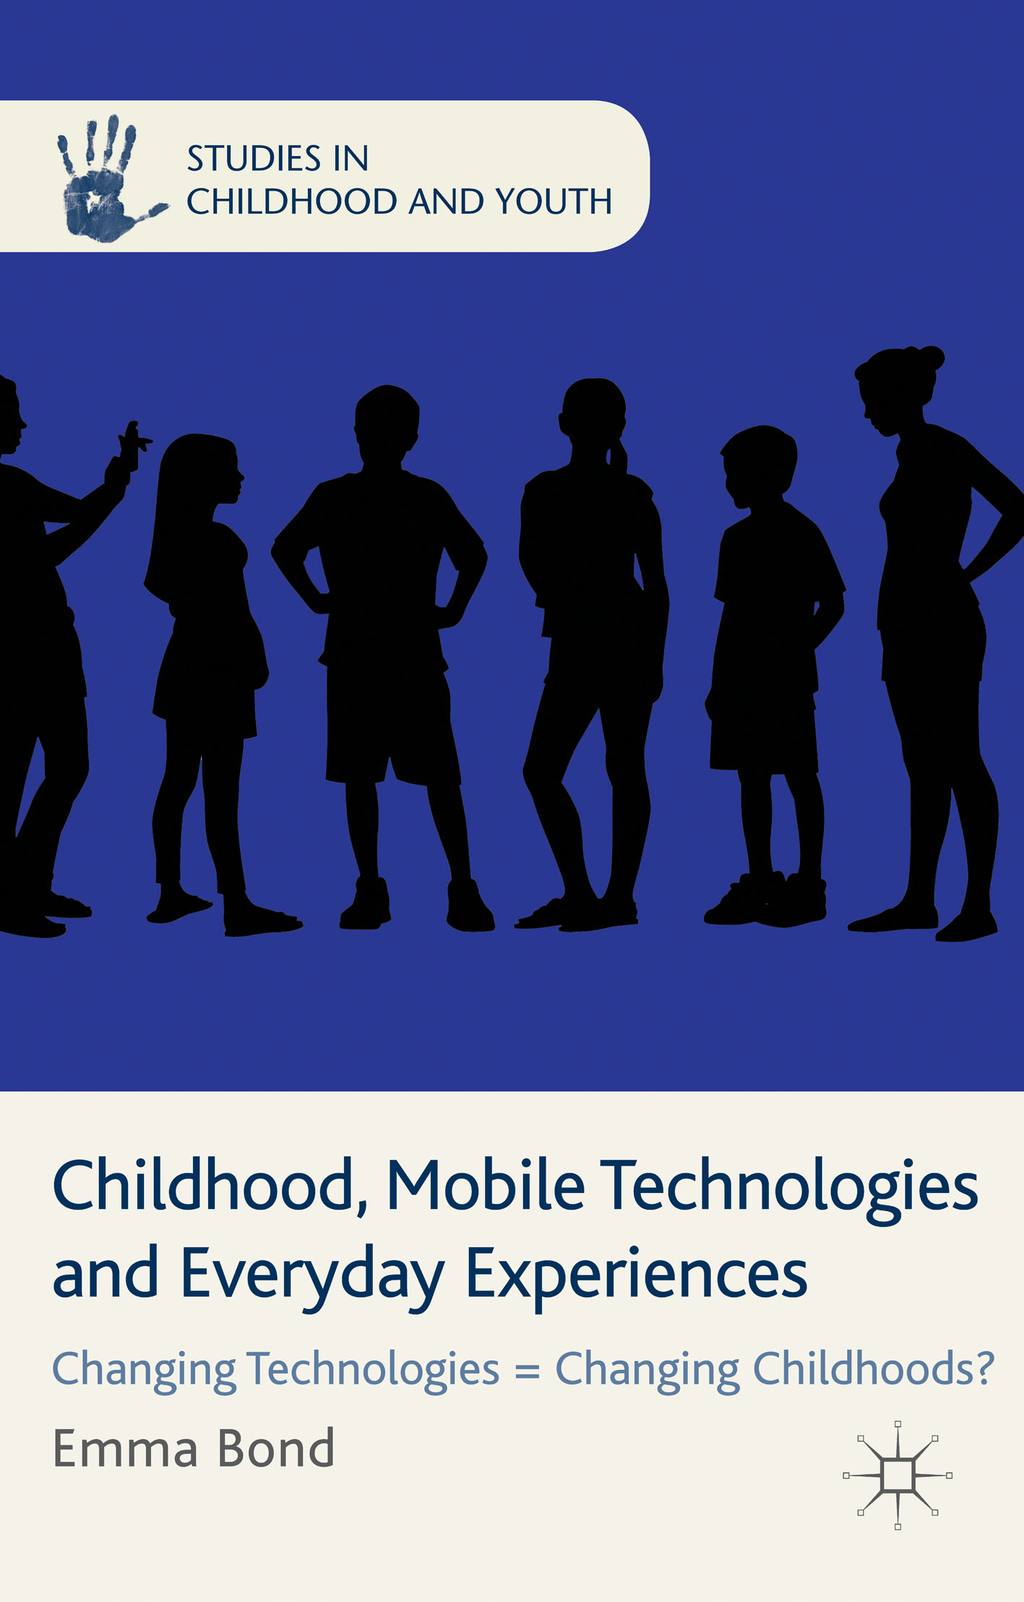 Childhood,  Mobile Technologies and Everyday Experiences Changing Technologies = Changing Childhoods?